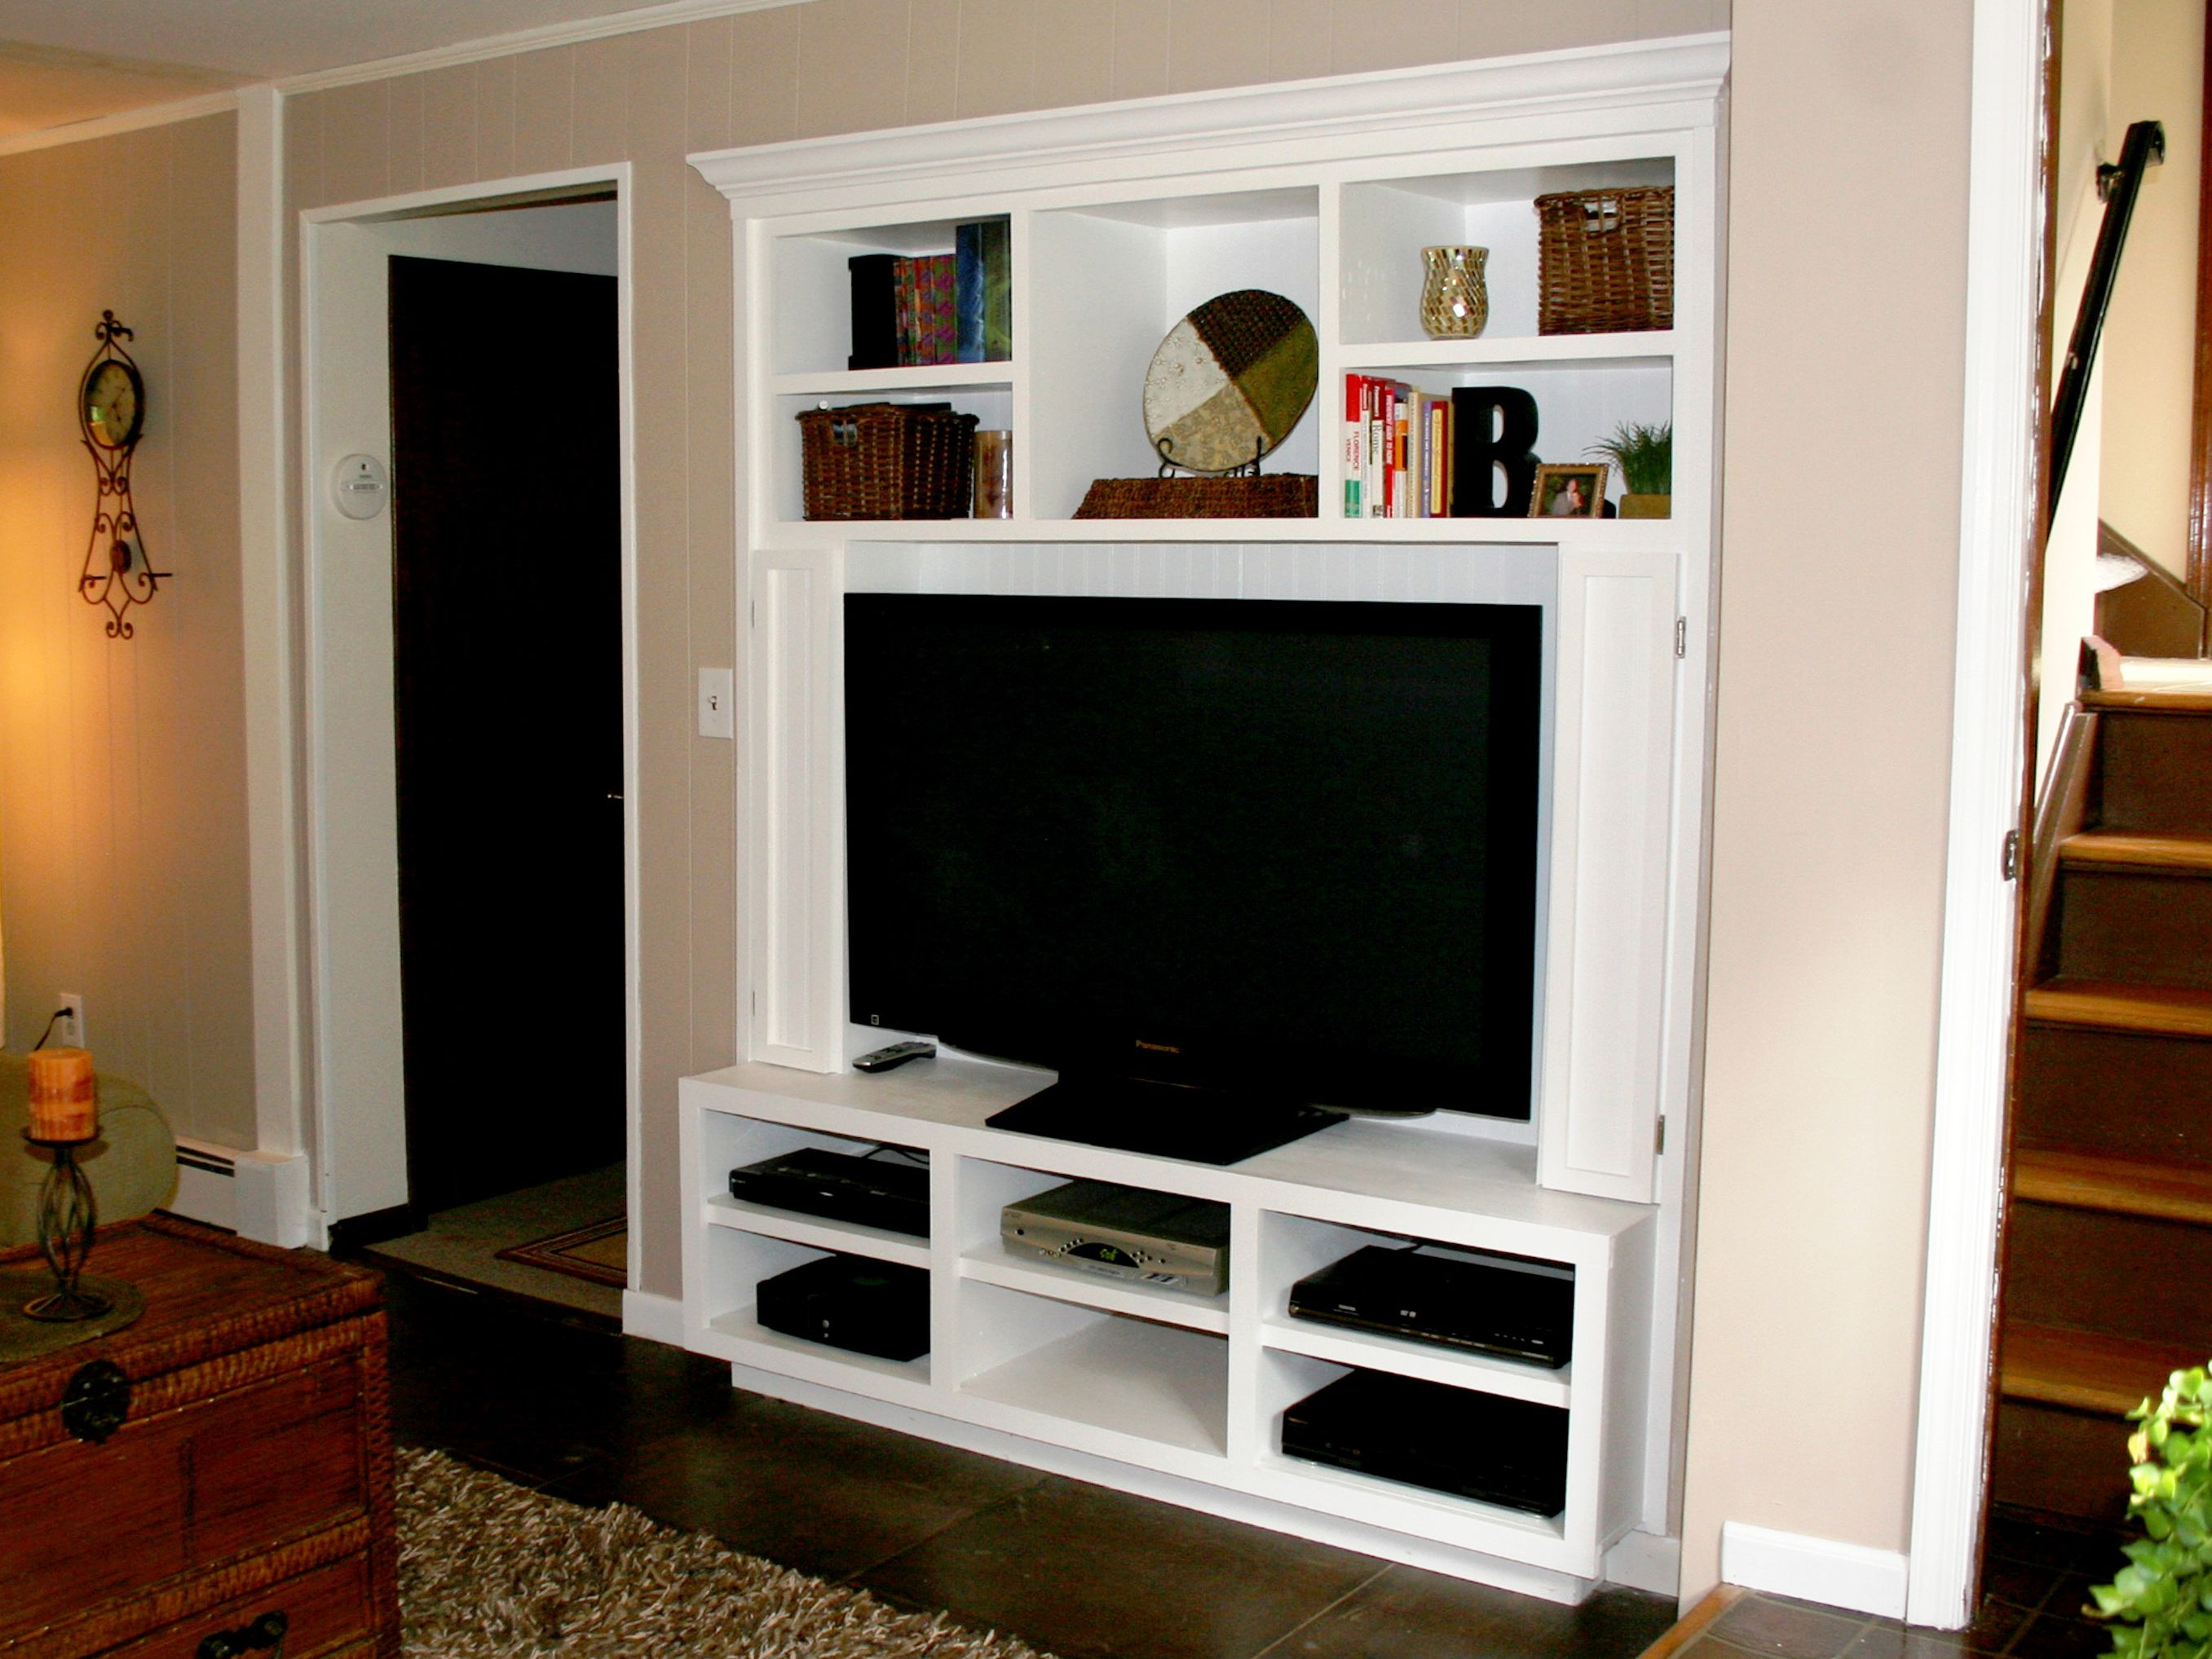 tv cabinet bookshelf - google search | shelves | pinterest